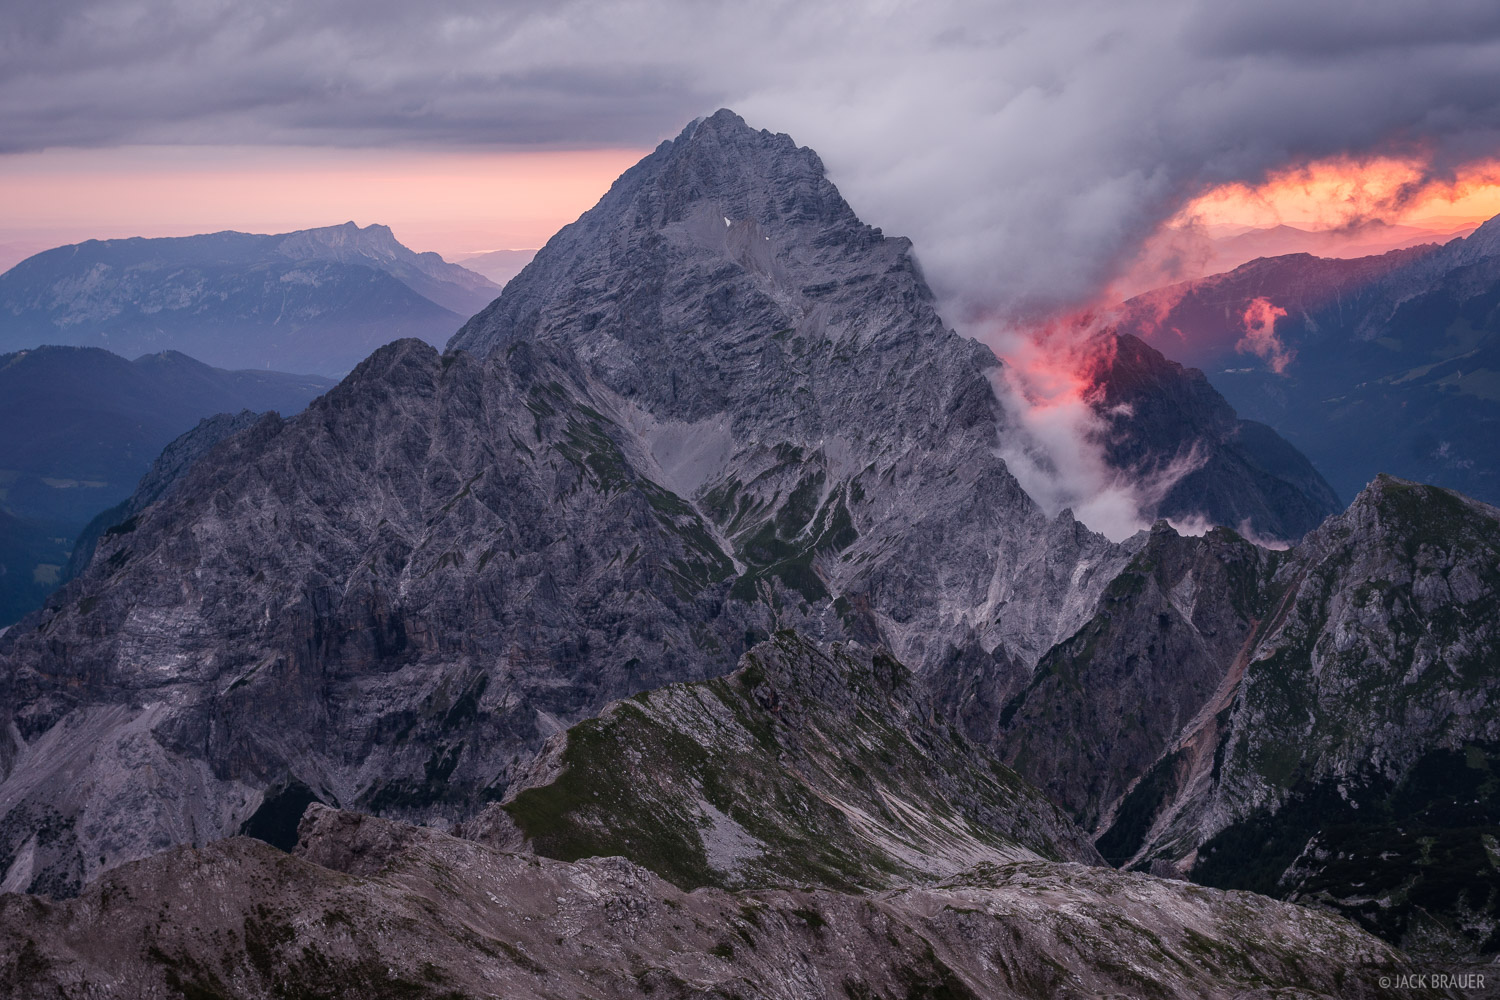 Sunrise behind Watzmann (2713 m / 8900 ft), as seen from the summit of Grosse Hundstod (2590 m / 8497 ft).